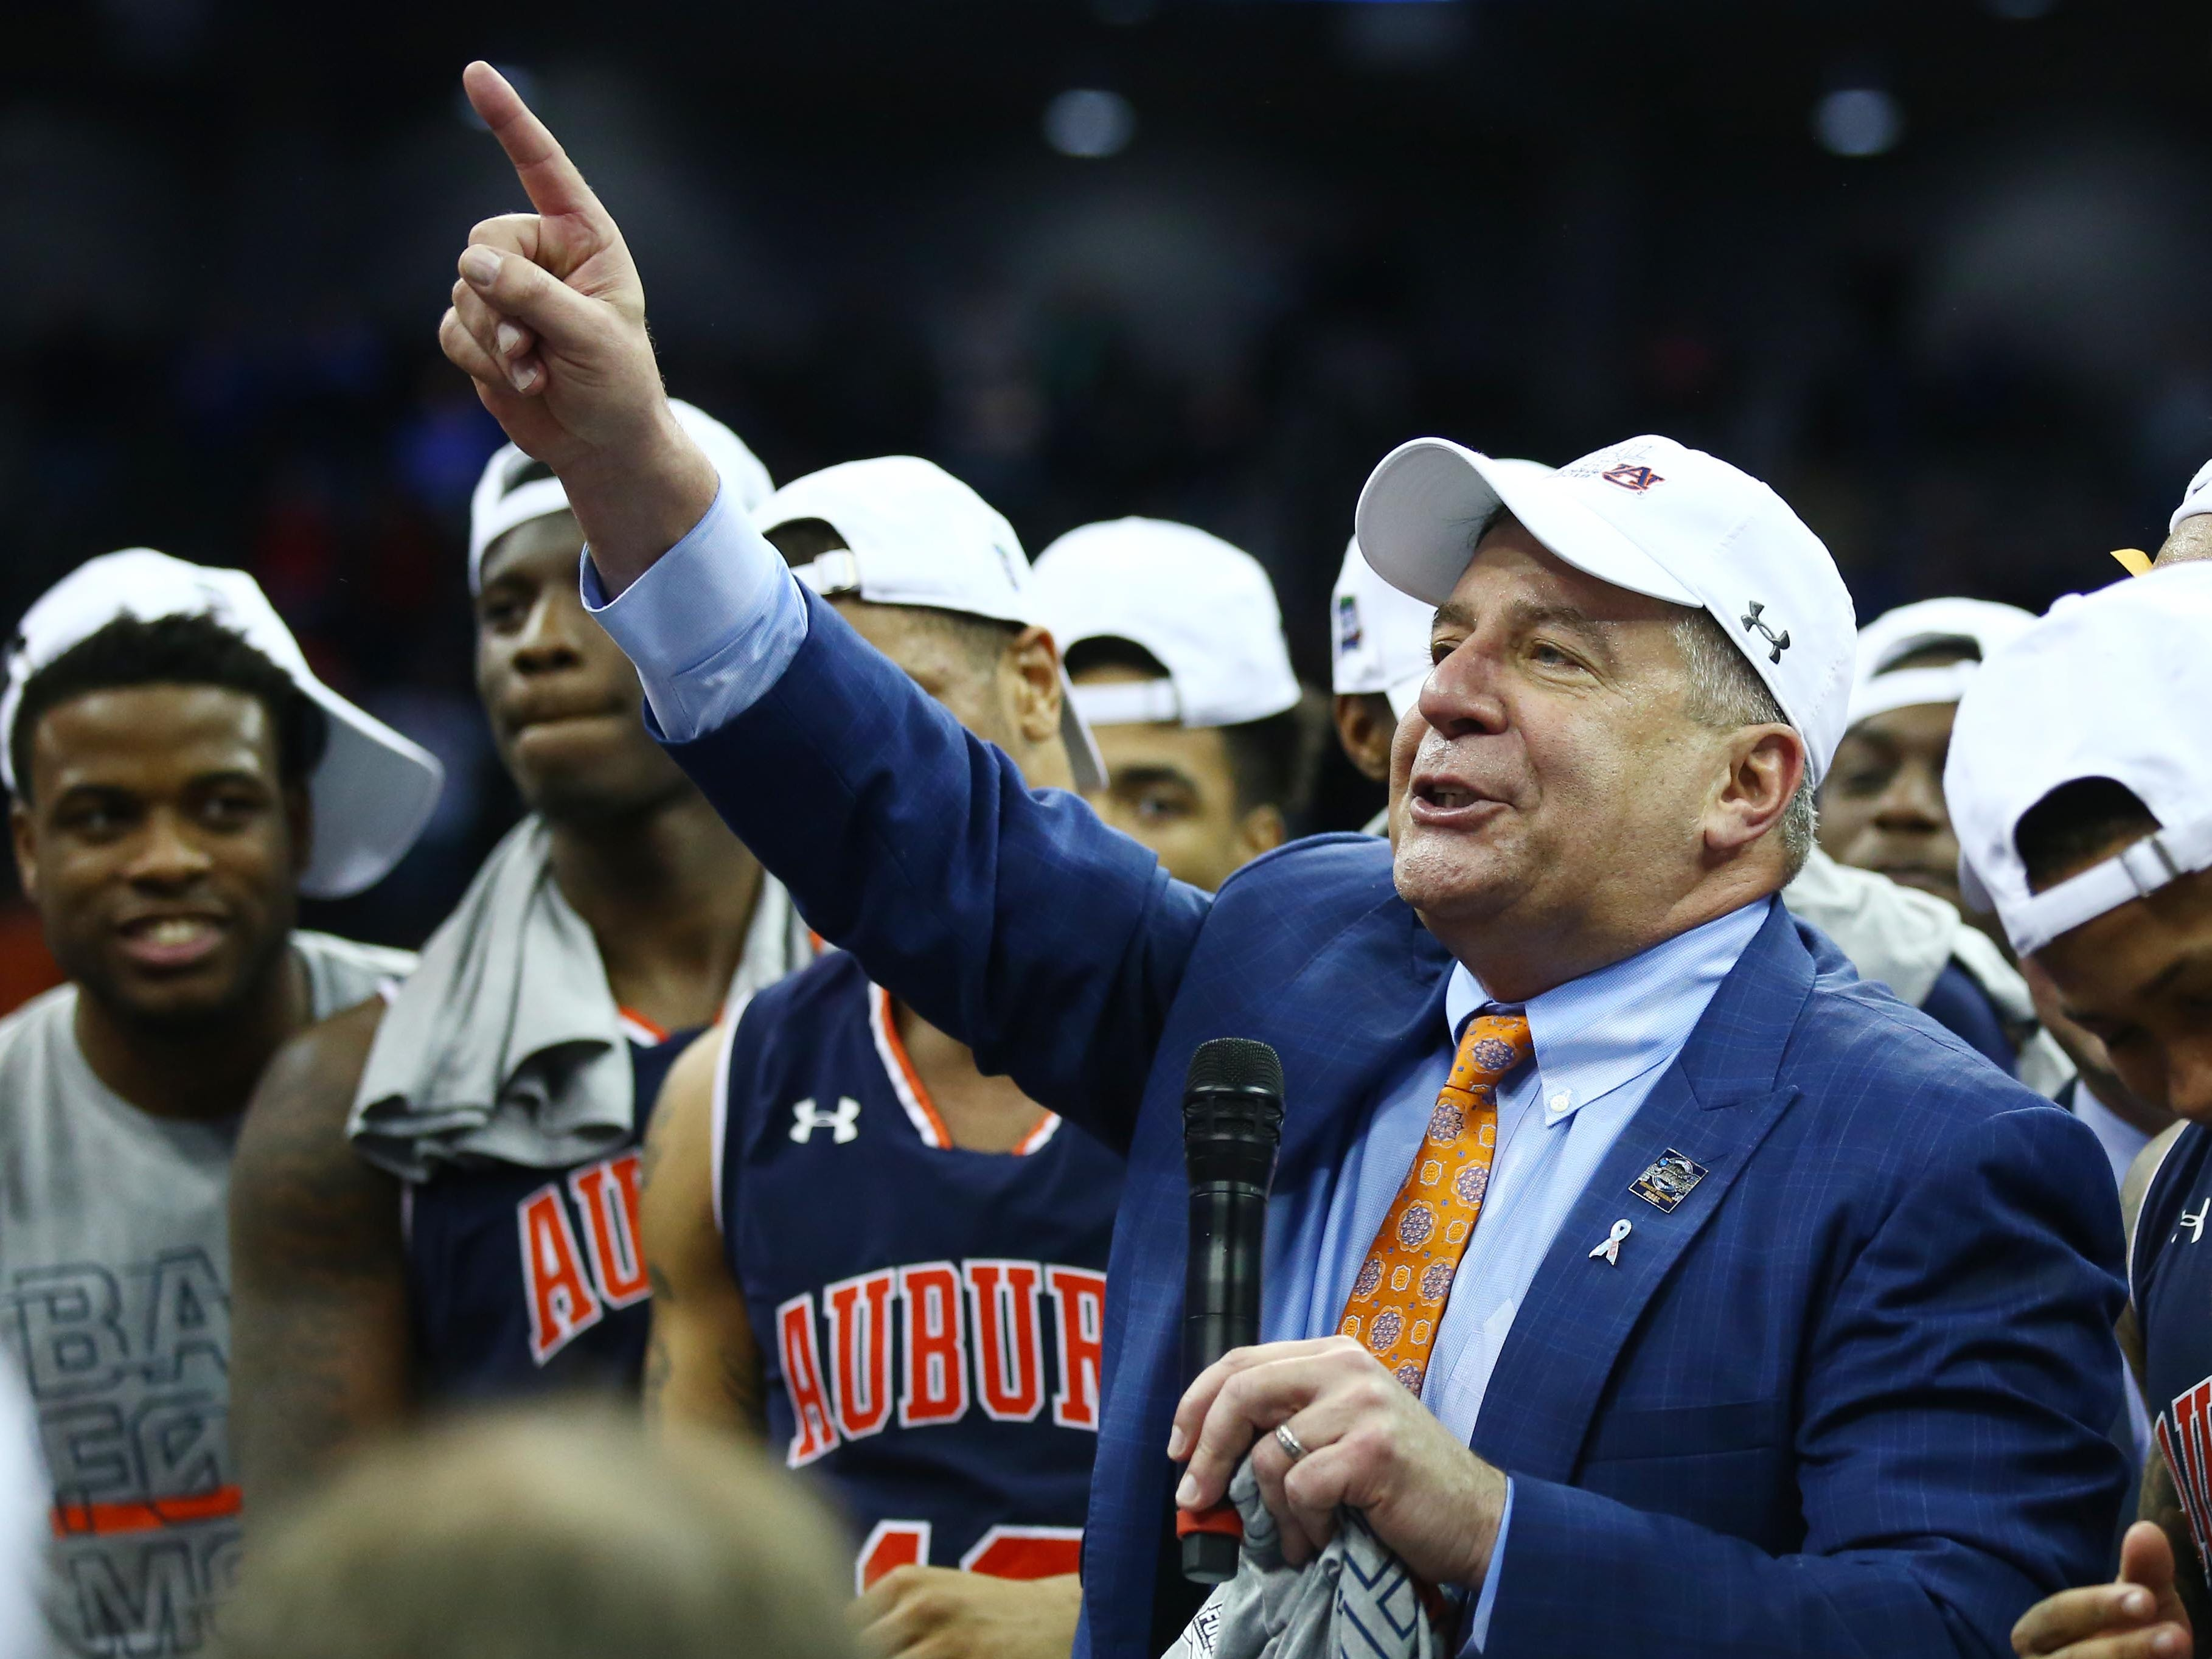 Auburn Tigers head coach Bruce Pearl speaks to the crowd after defeating the Kentucky Wildcats in the championship game of the midwest regional of the 2019 NCAA Tournament at Sprint Center.